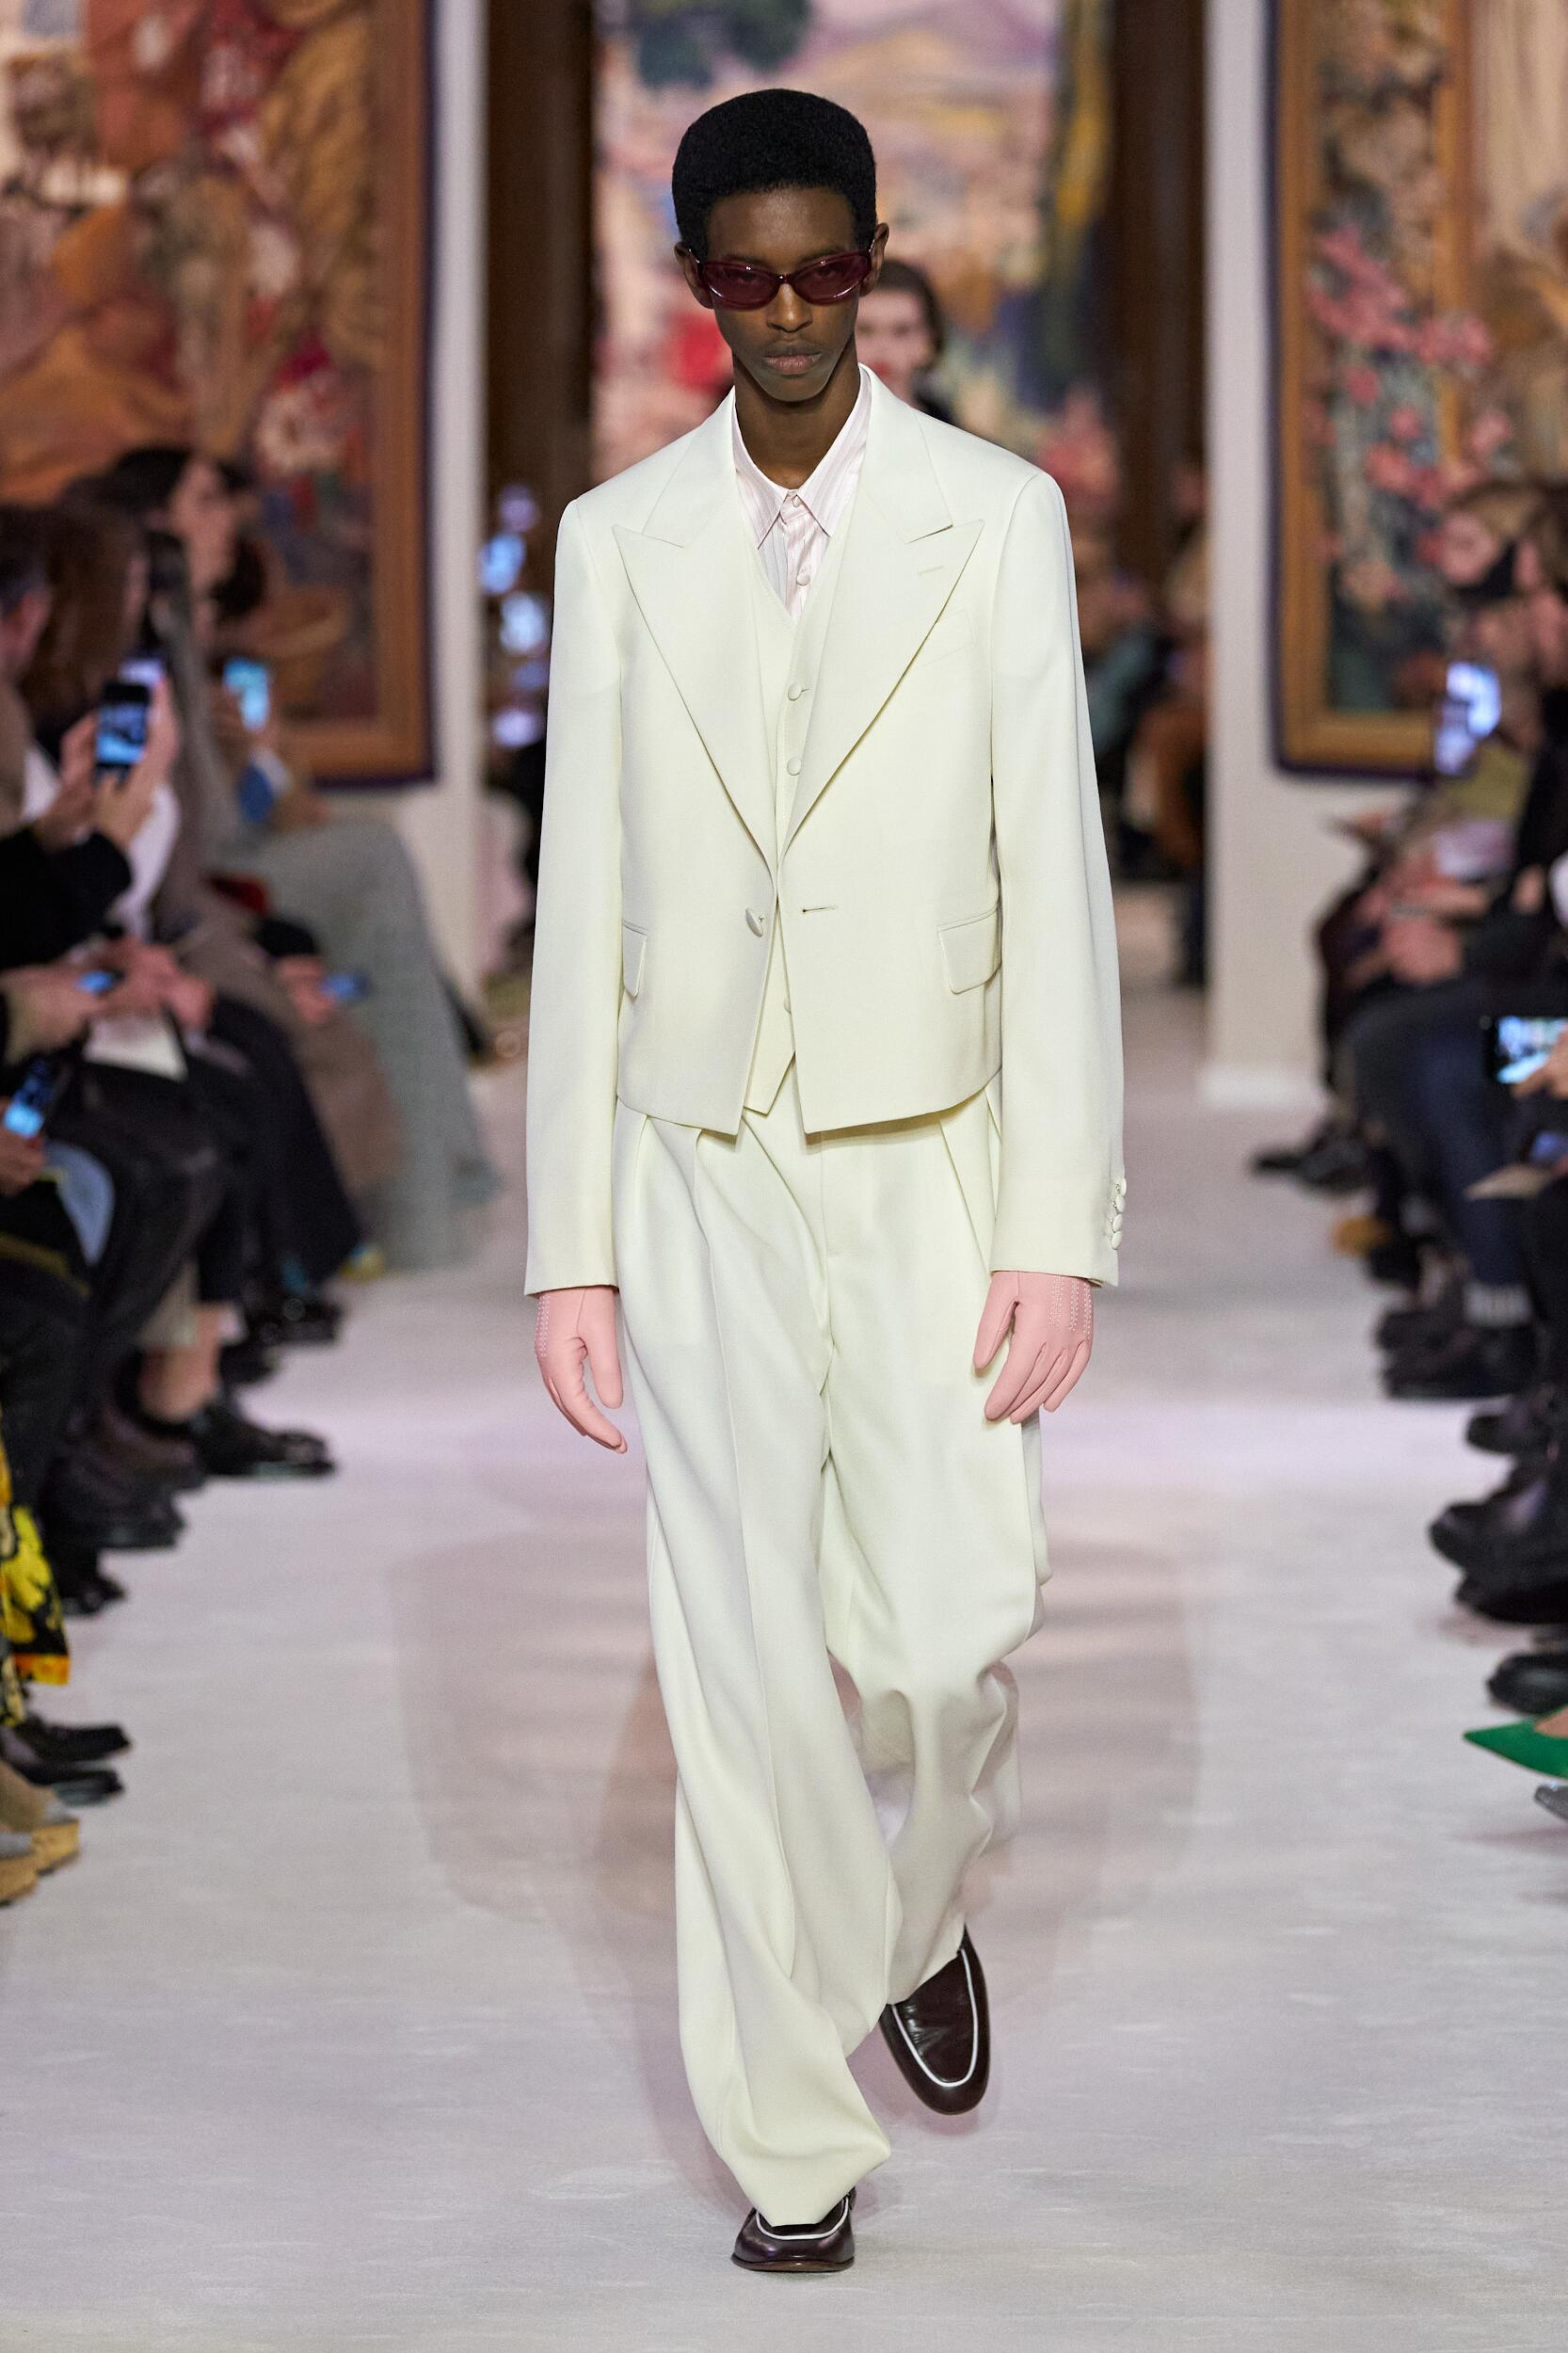 Winter 2020 Fashion Man Trends Lanvin